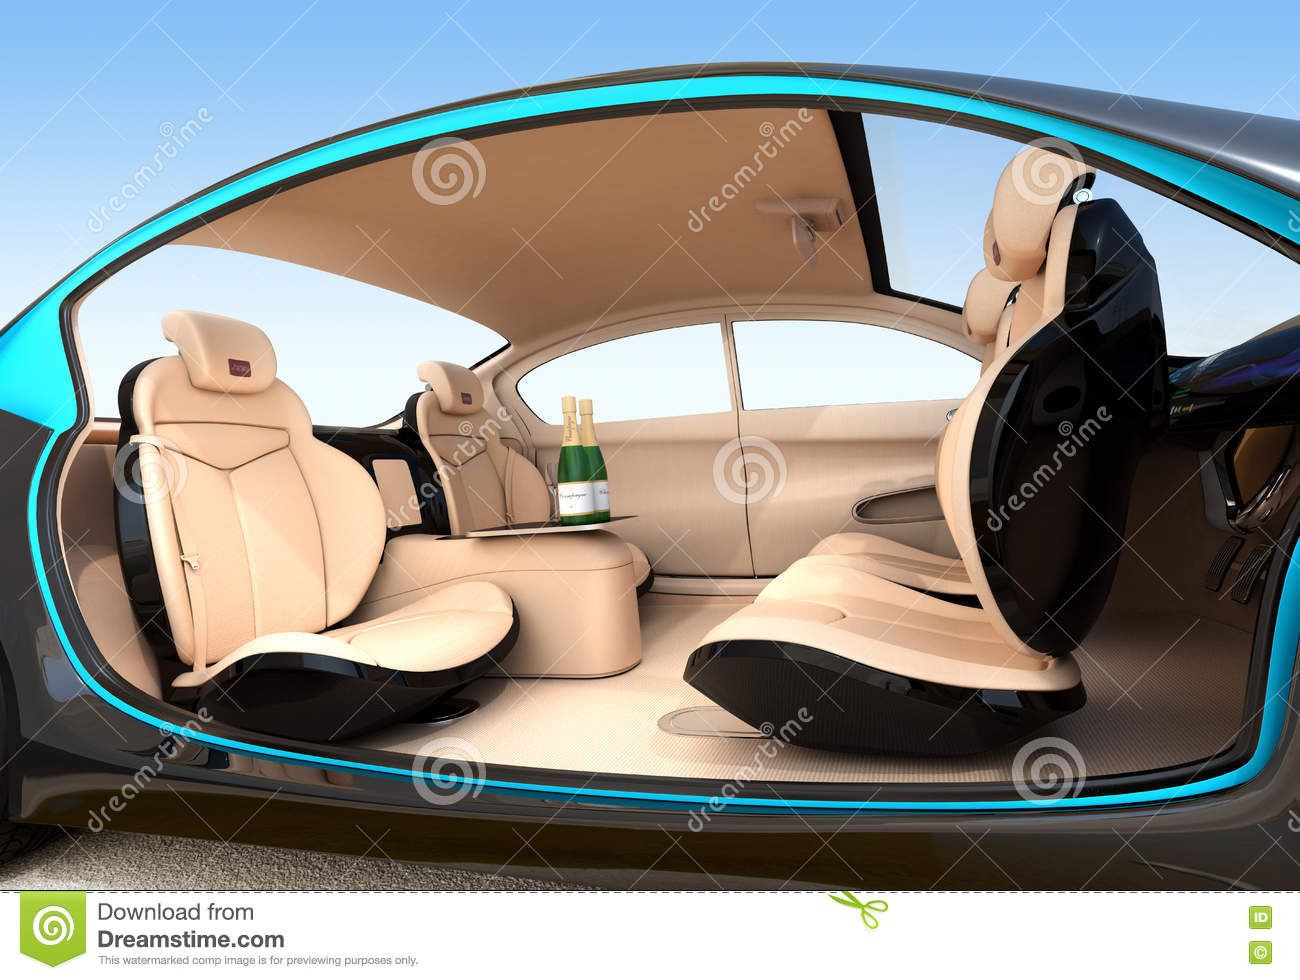 autonomous car interior concept stock illustration illustration of champagne electric 71646207. Black Bedroom Furniture Sets. Home Design Ideas